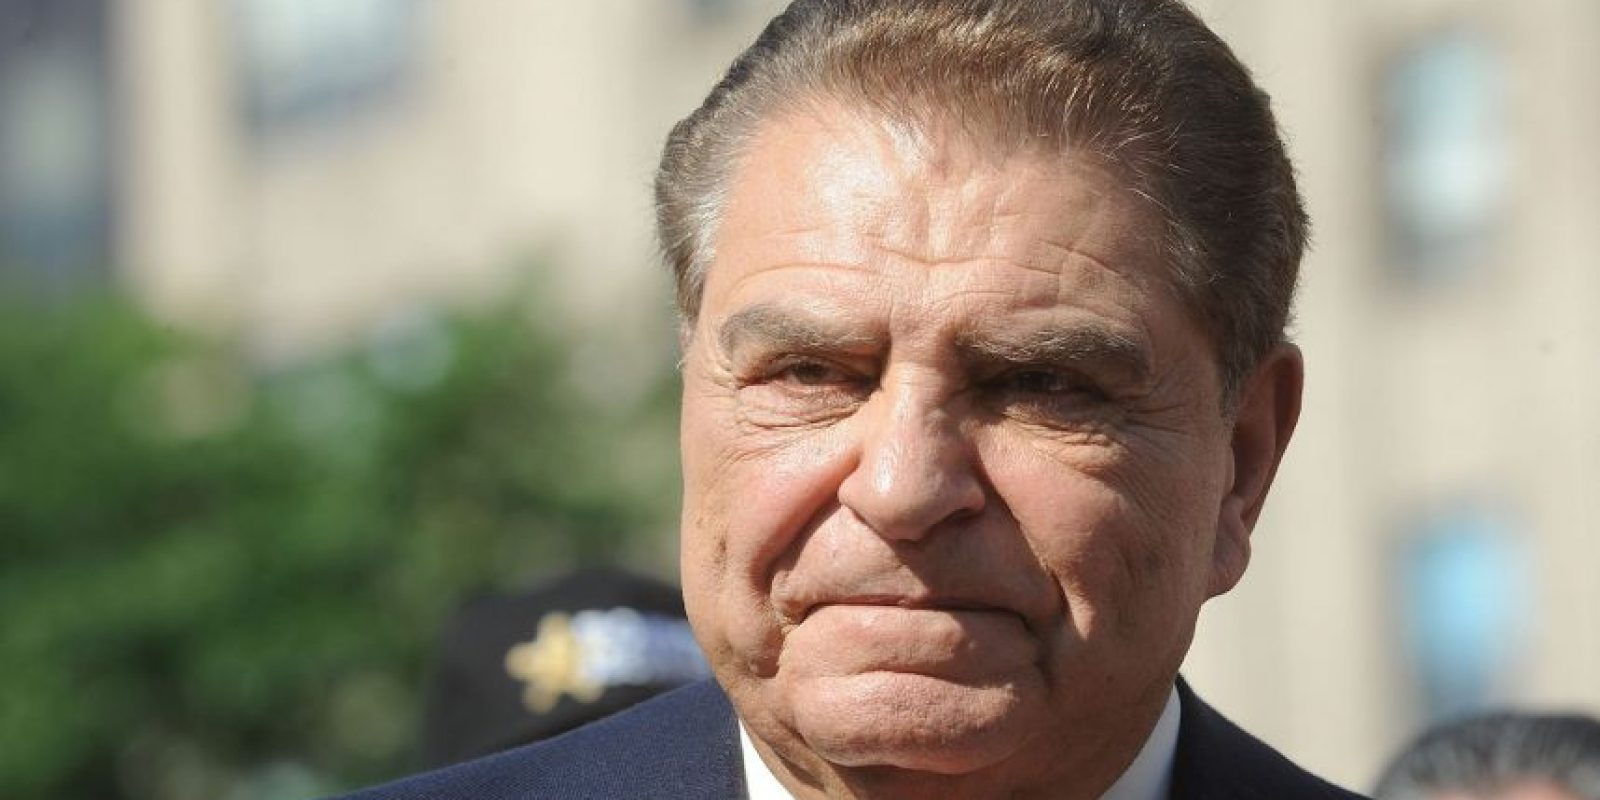 Don Francisco Foto: Getty Images